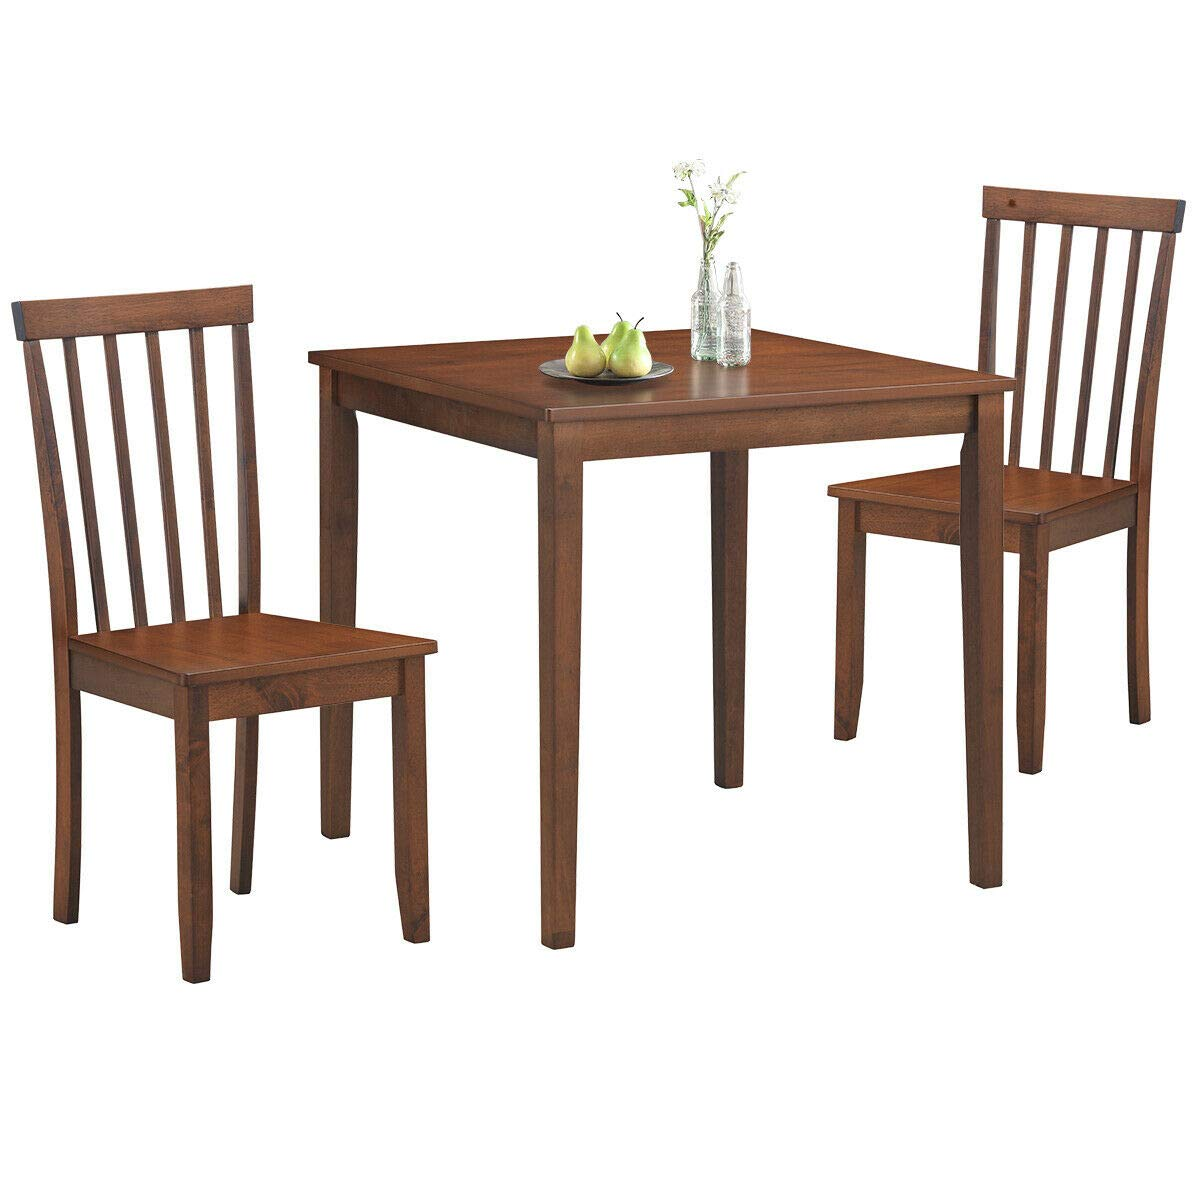 COSTWAY 9-Piece Kitchen Table Dining Set, Square Table & 9 Classic Chairs,  Solid Rubber Wood Legs, Wide Table Top